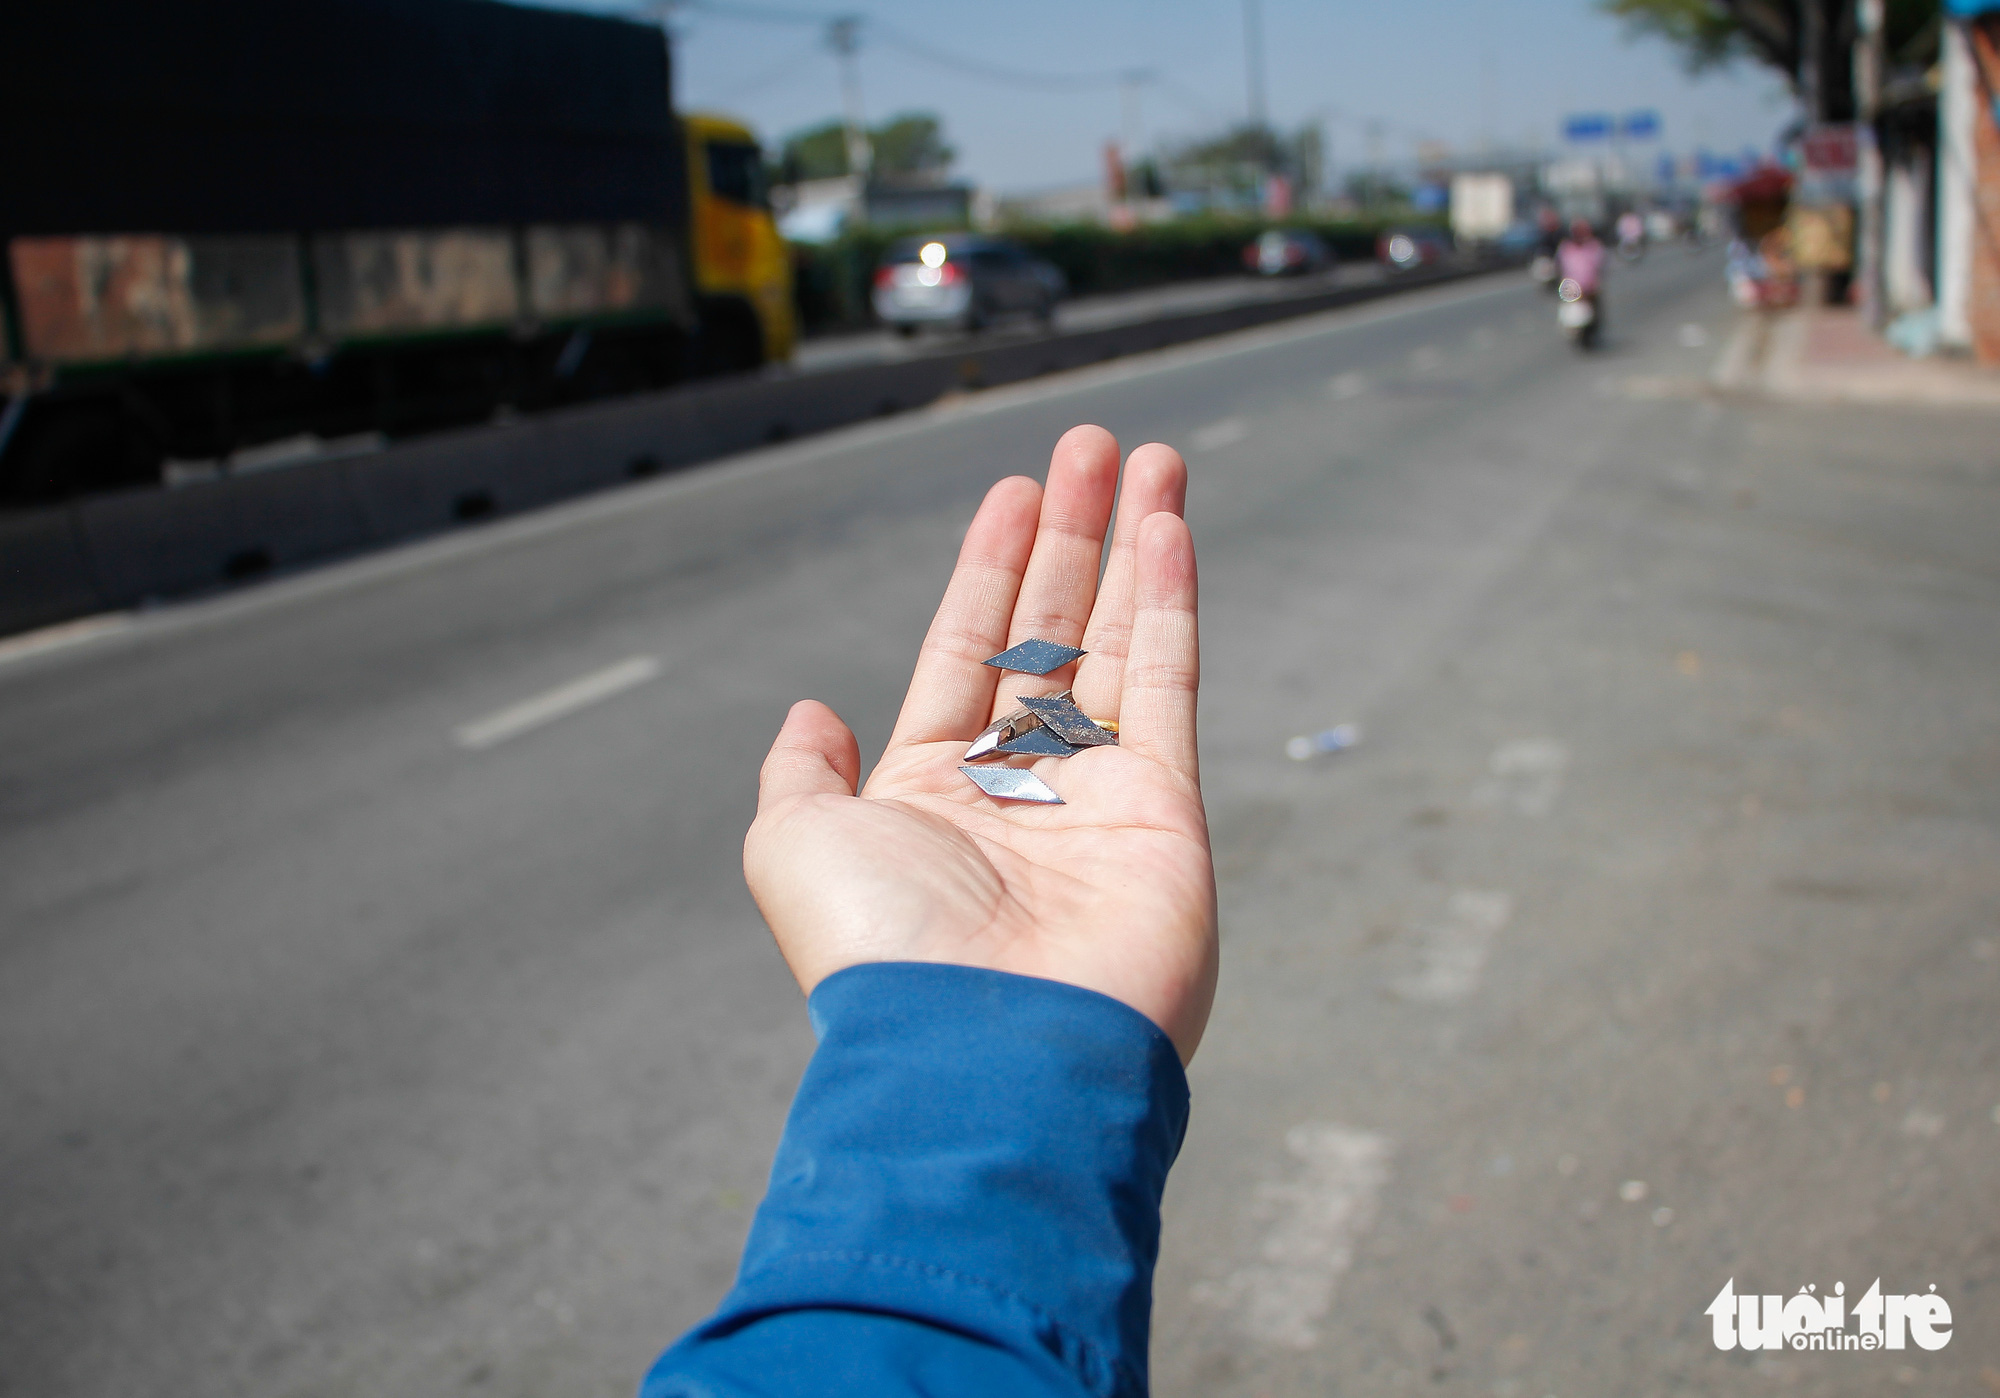 Tire-puncturing nails are found on a street in Ho Chi Minh City. Photo: Chau Tuan / Tuoi Tre